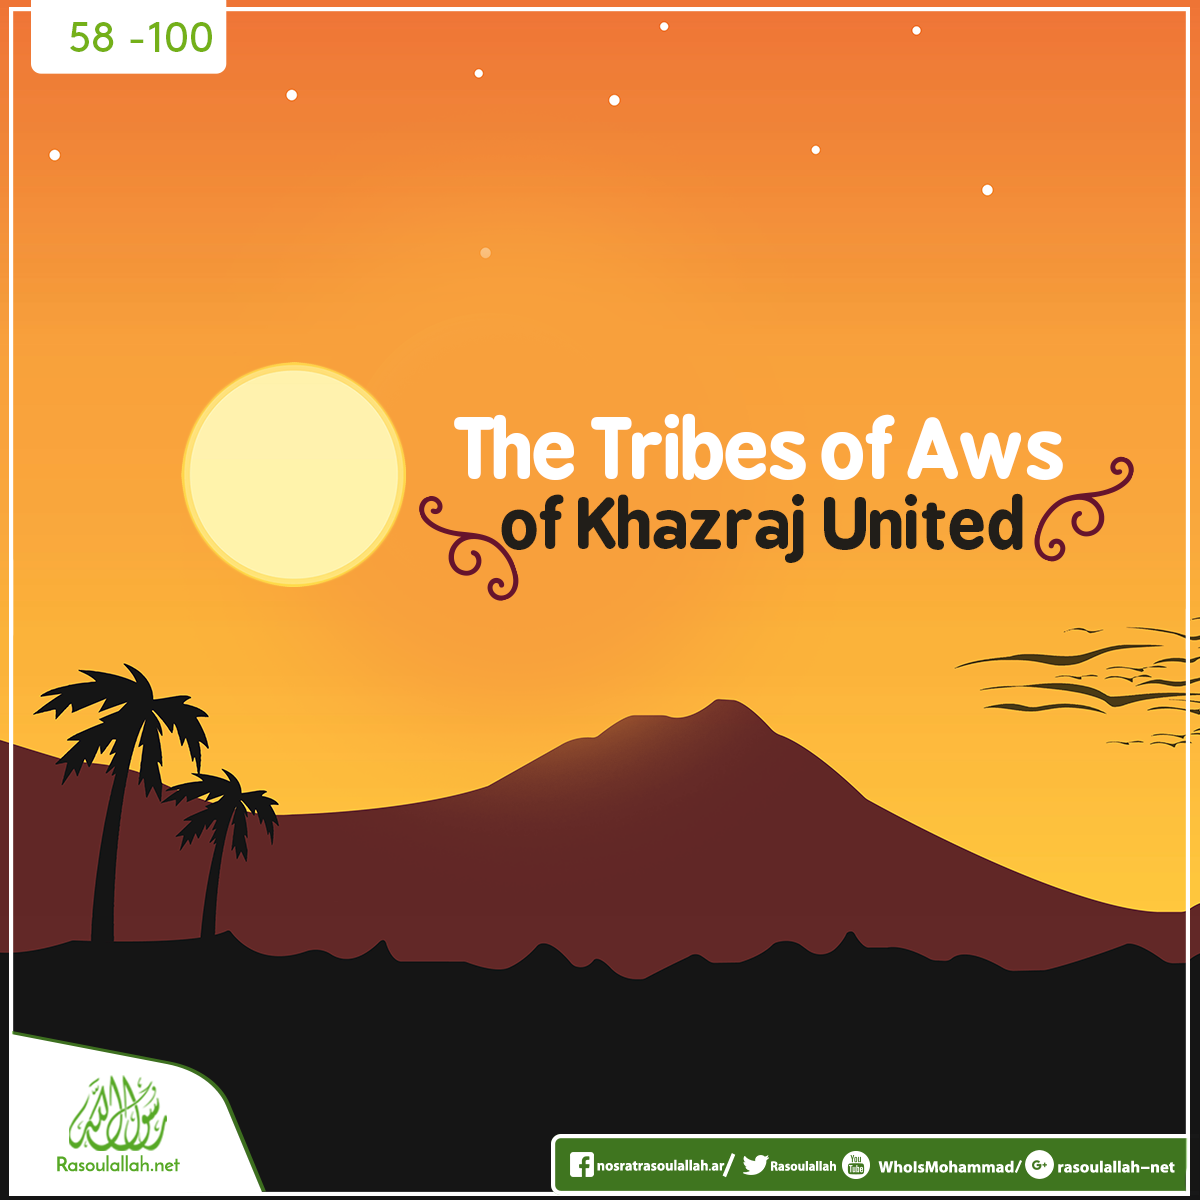 The Tribes of Aws and Khazraj United